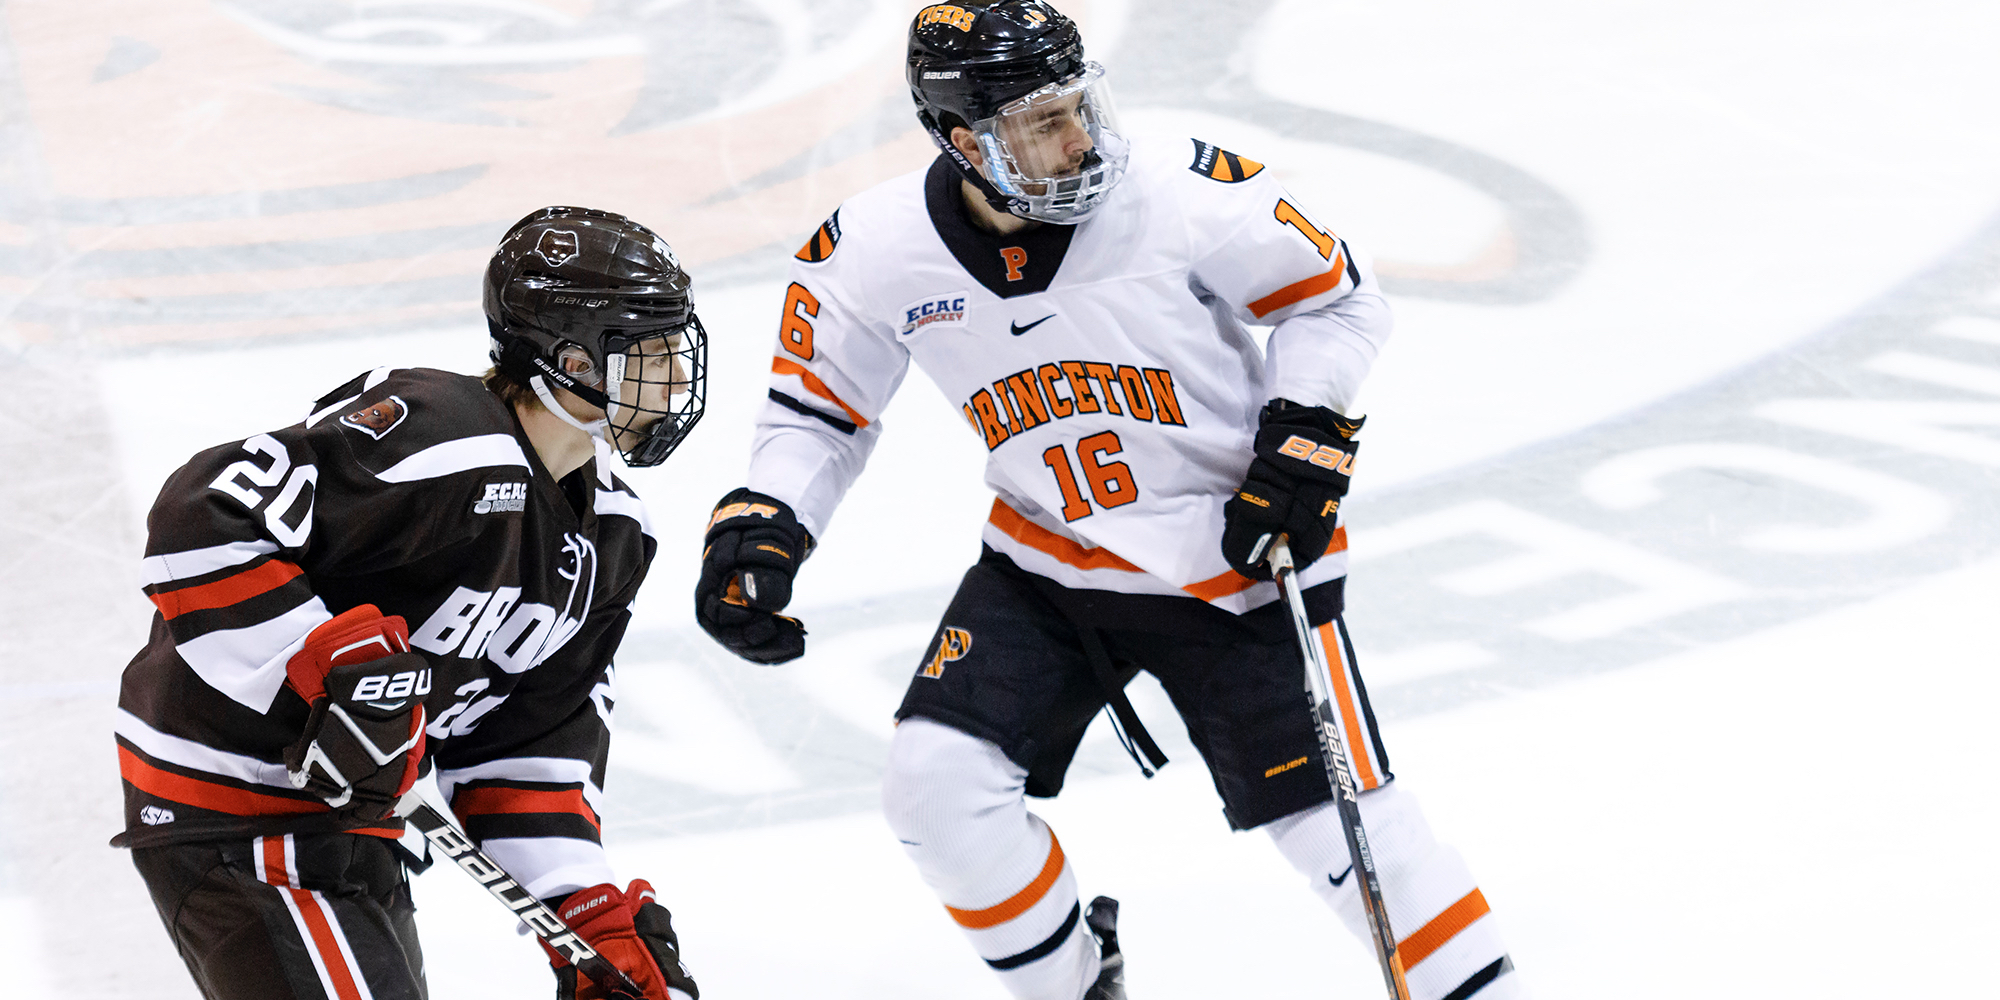 Princeton Suffers Setback to Brown